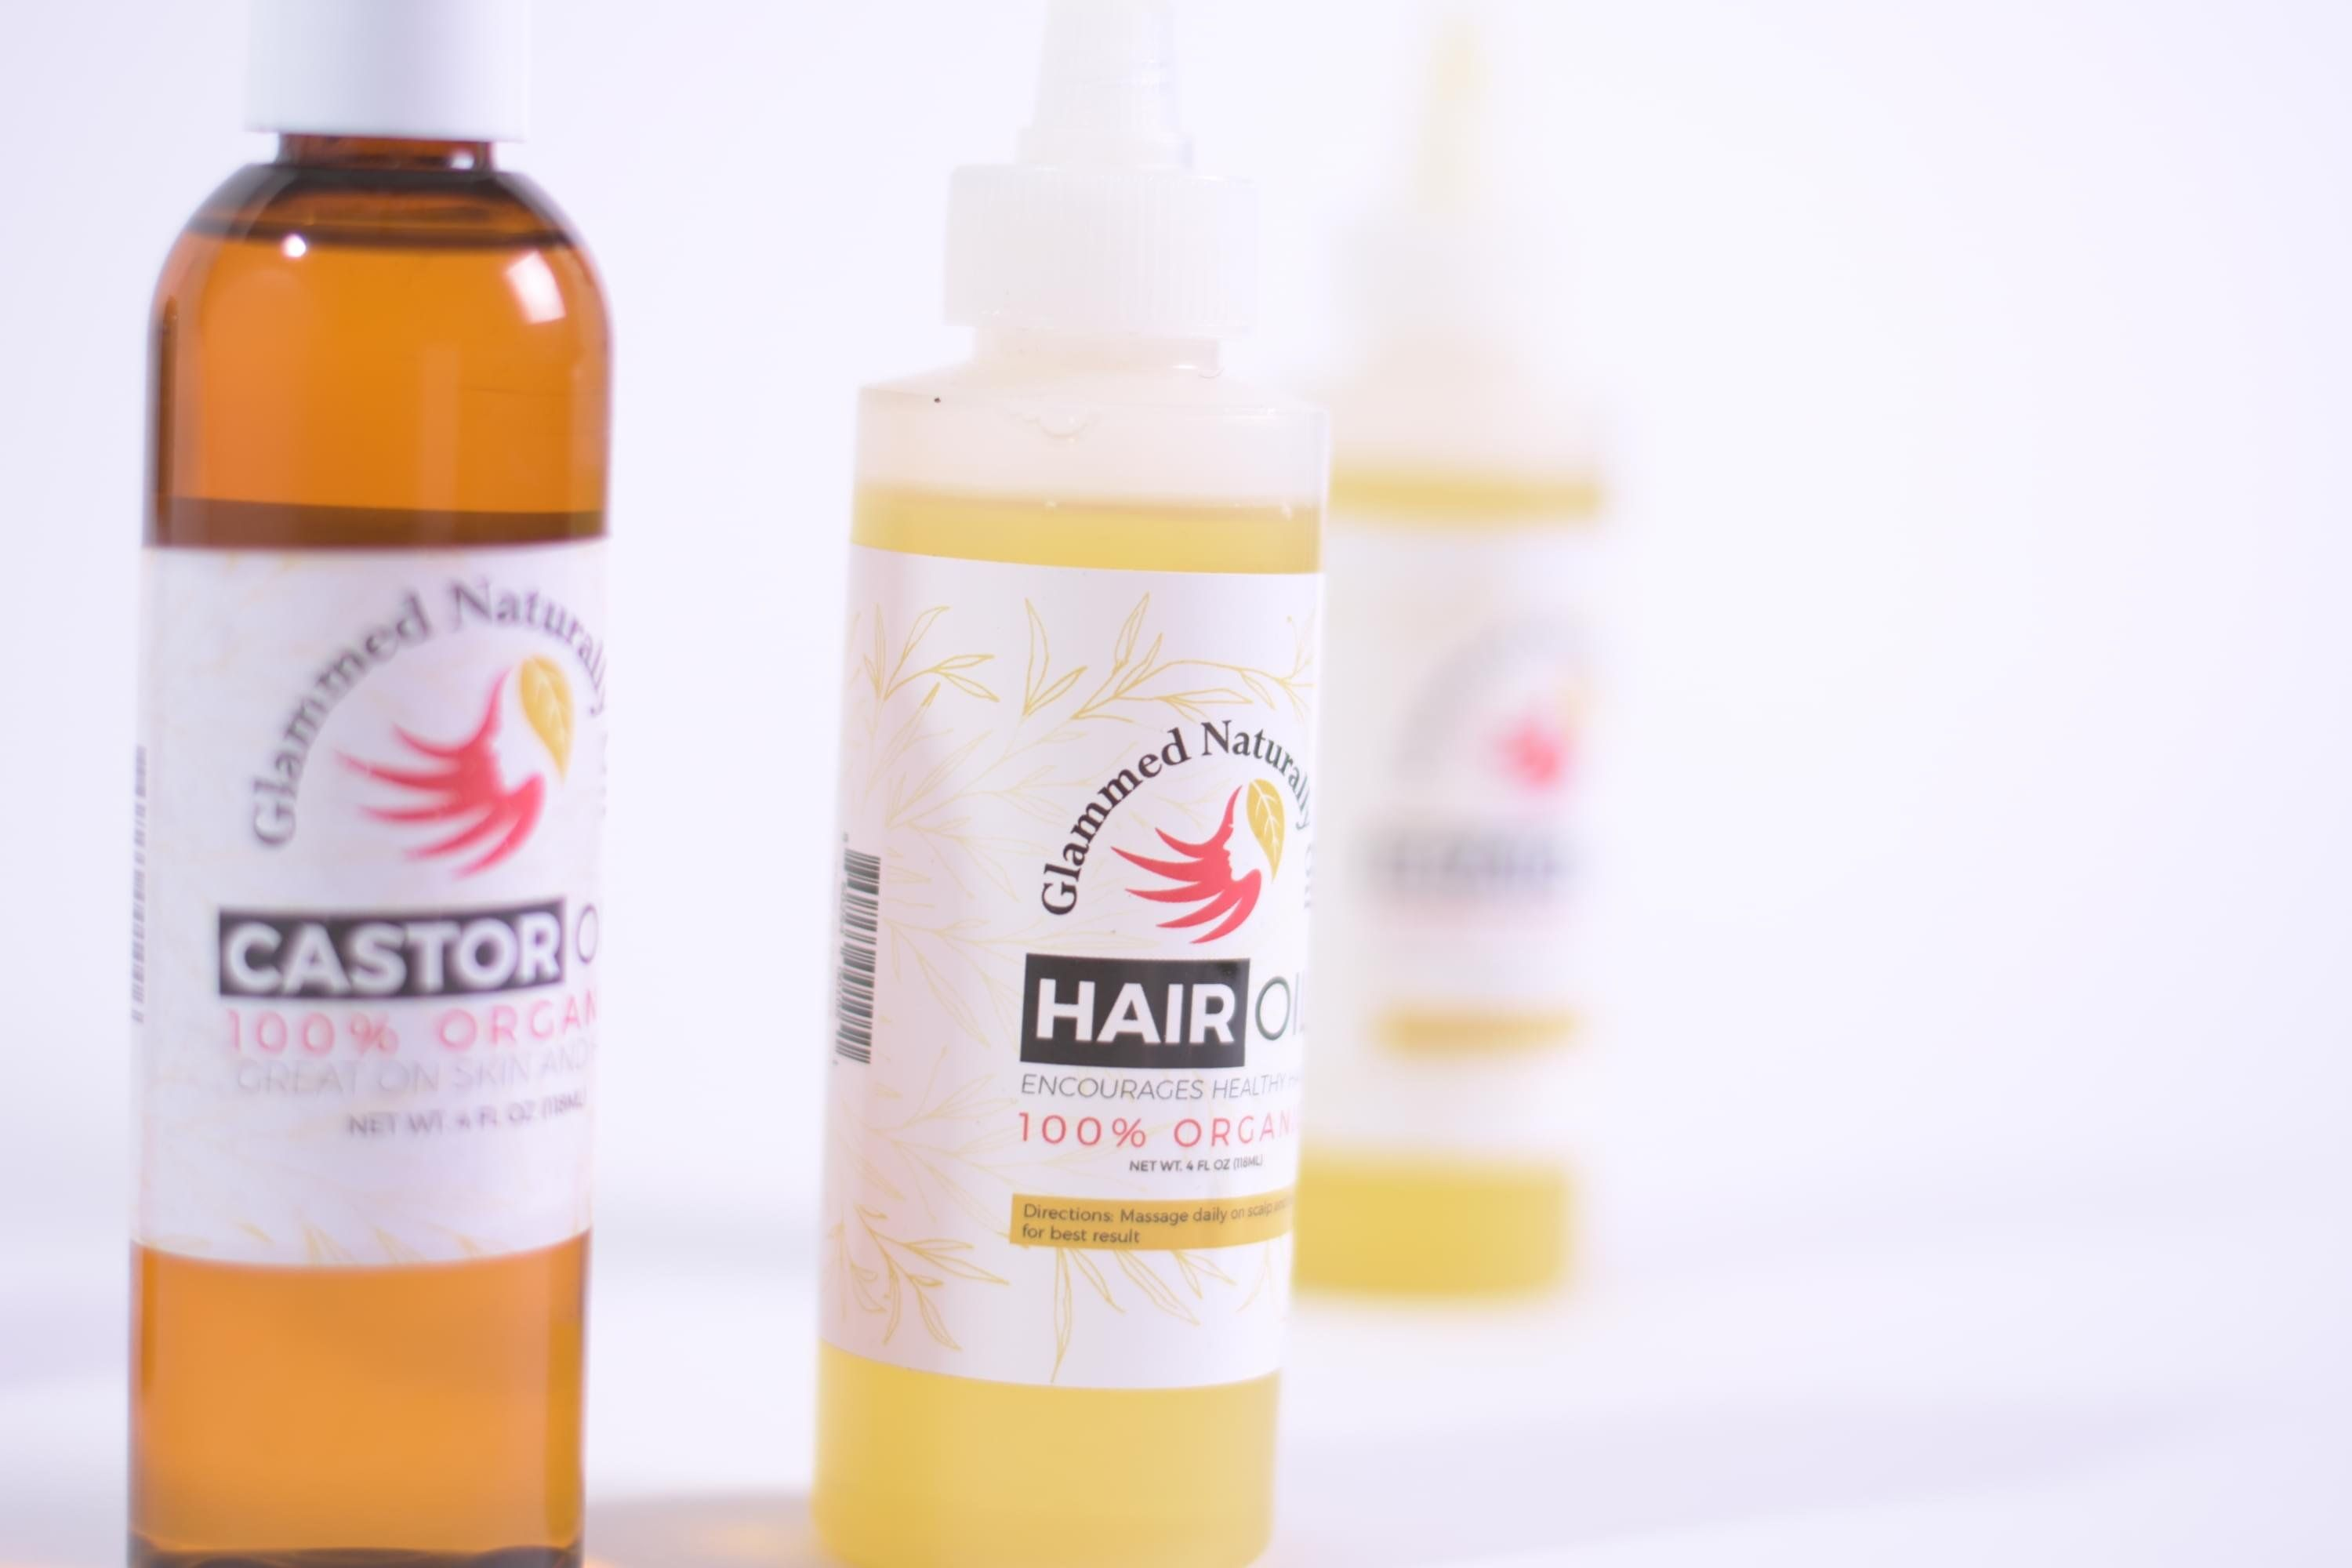 Glammed Naturally Oil | How to grow your hair faster, Healthy hair growth, Organic oil